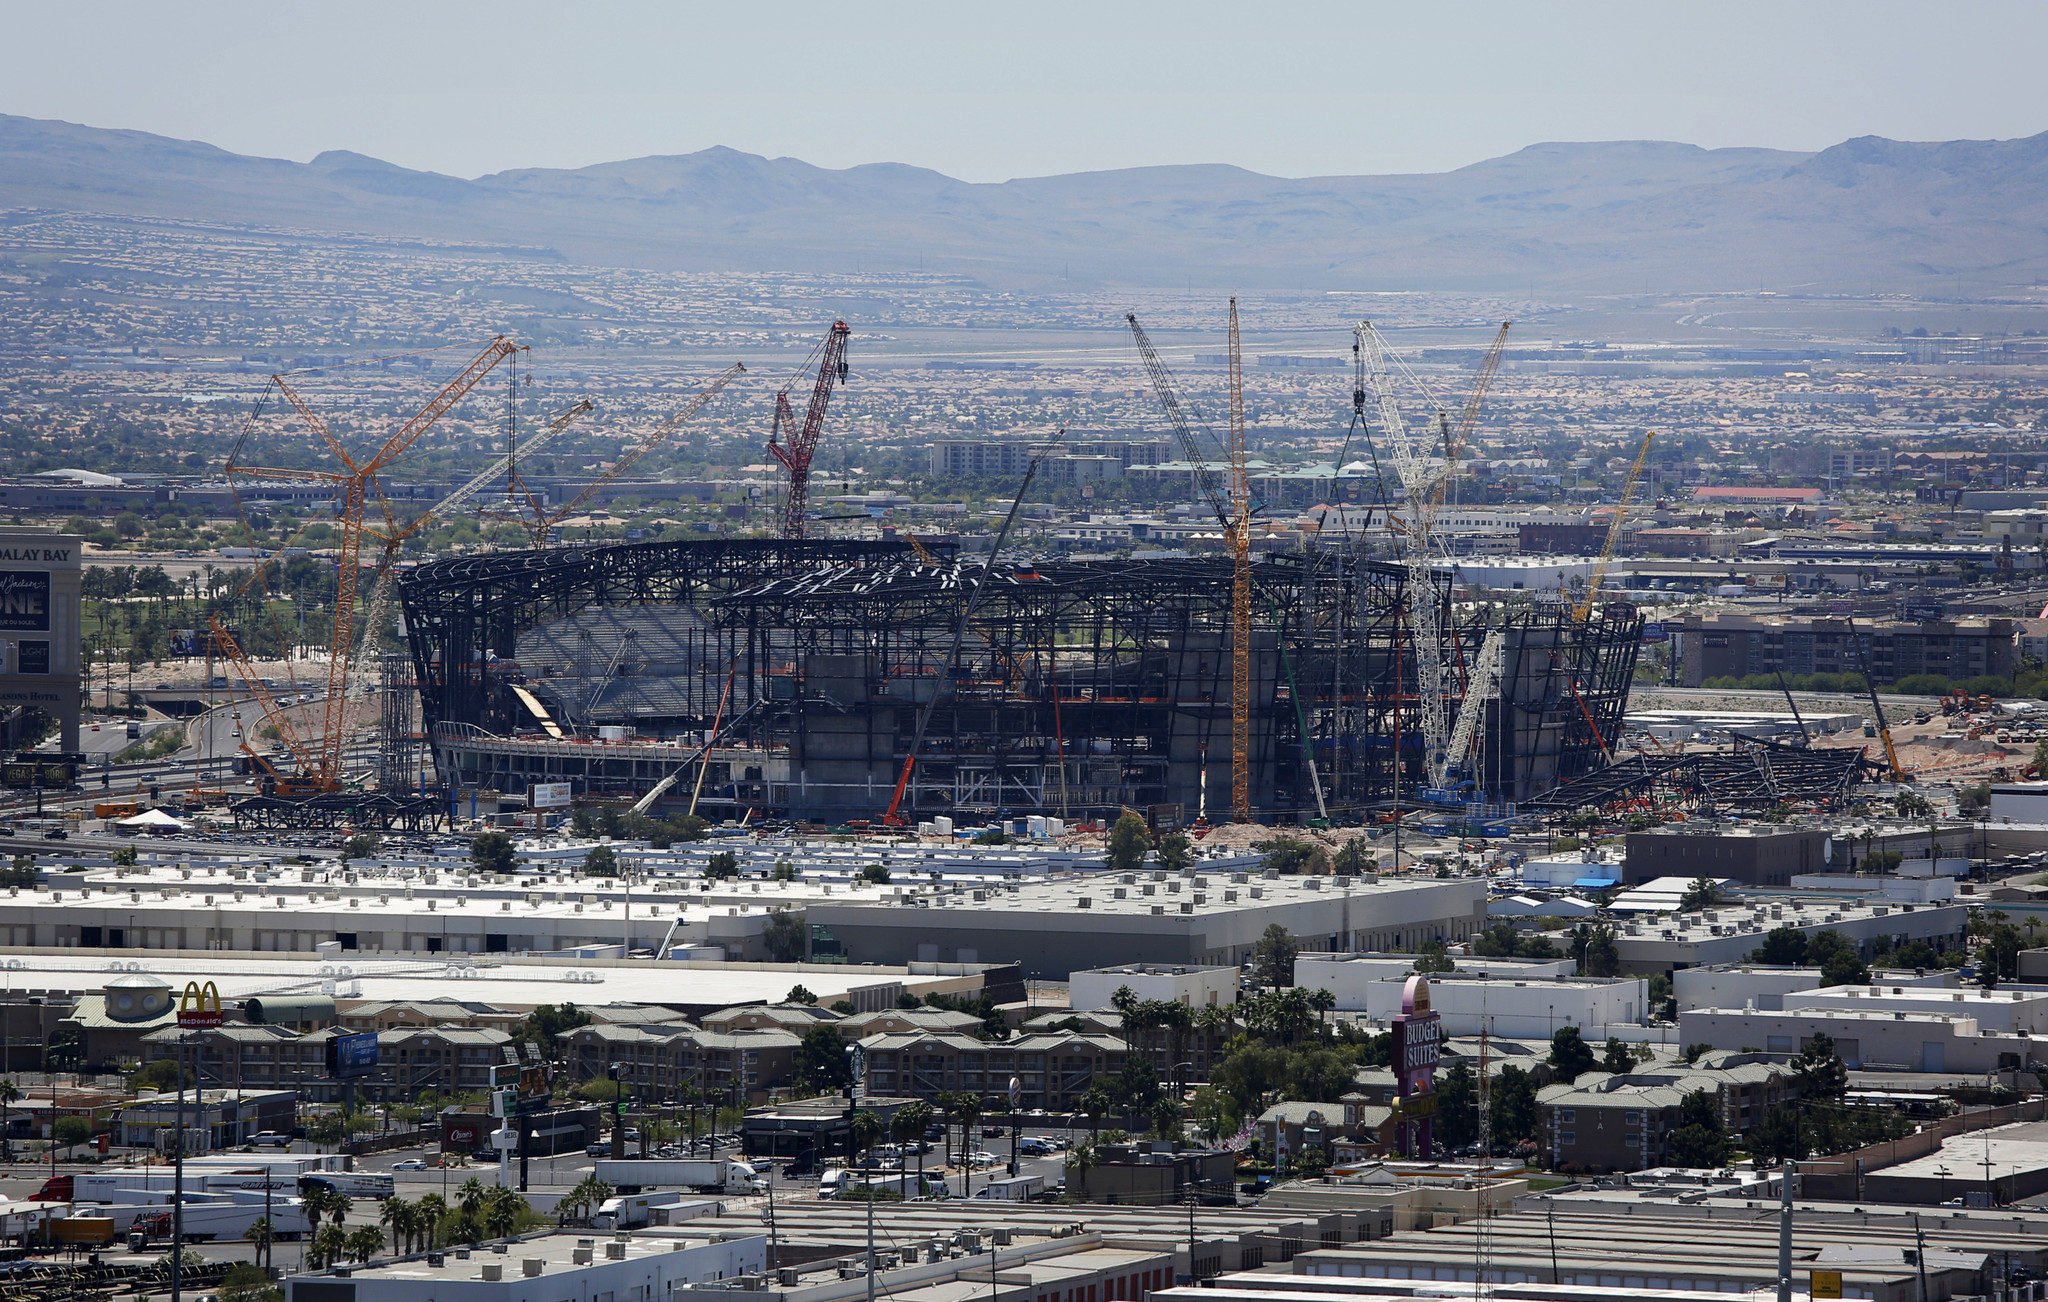 NFL stadium construction continues as workers get coronavirus